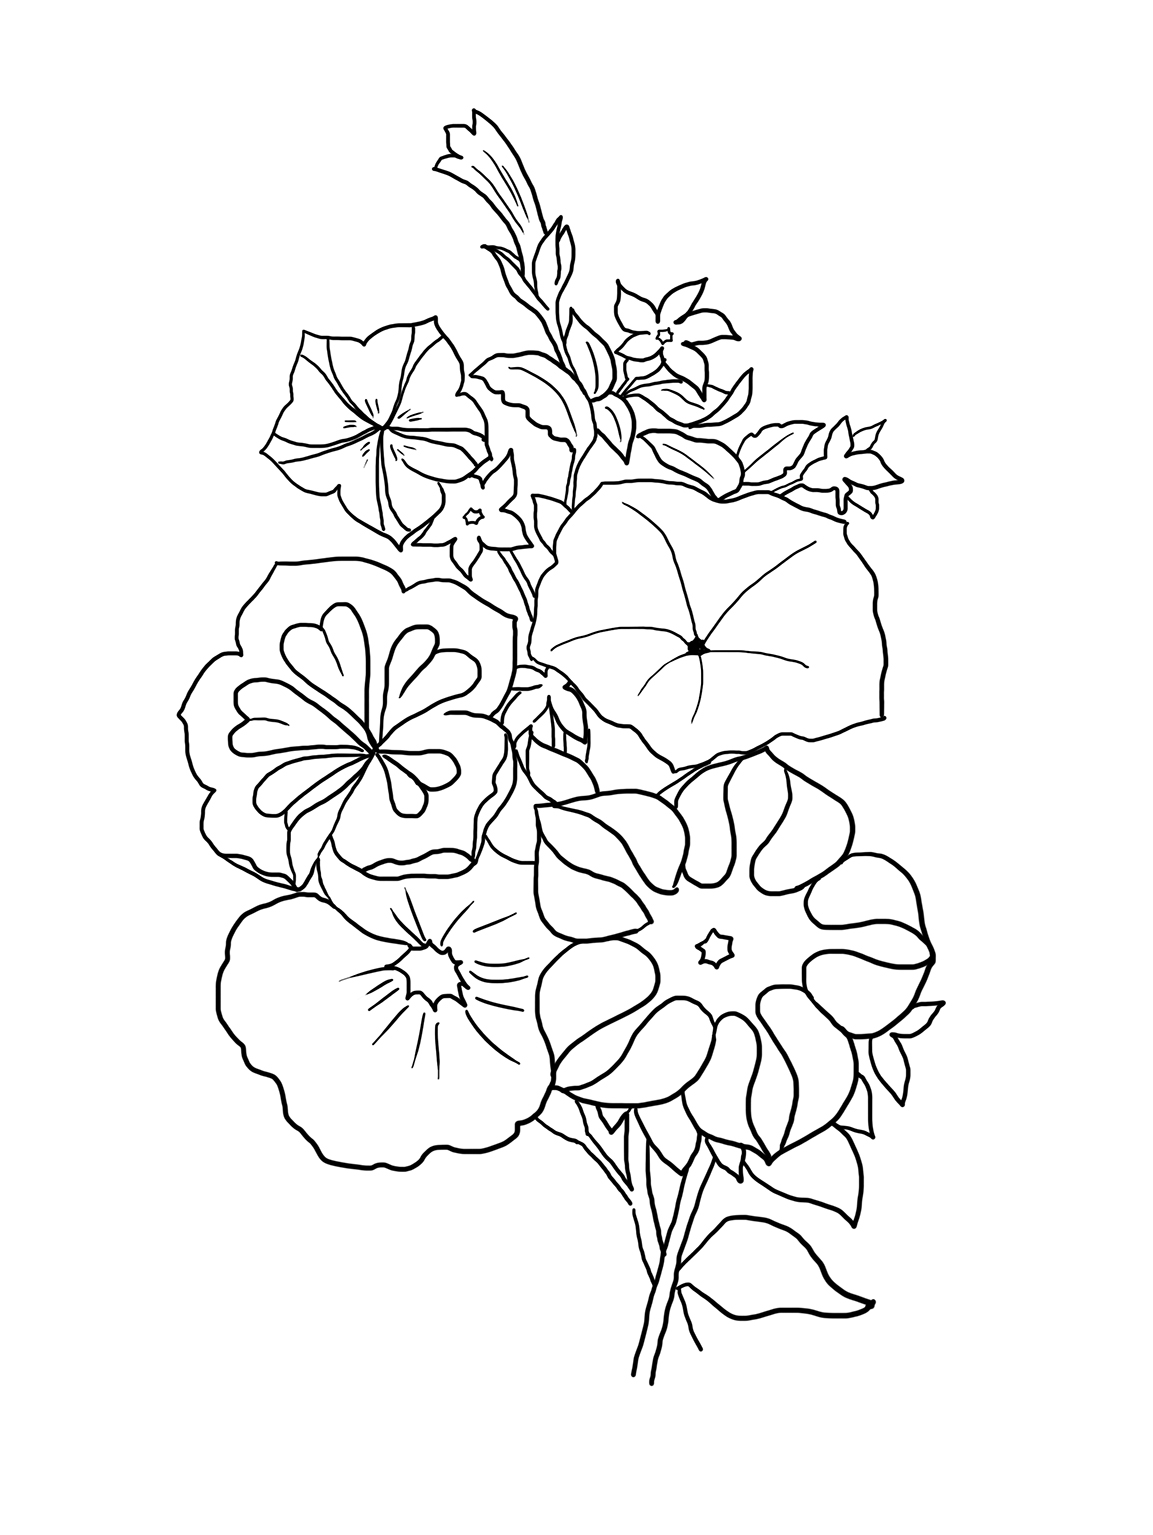 pics of coloring pages flowers - photo#17